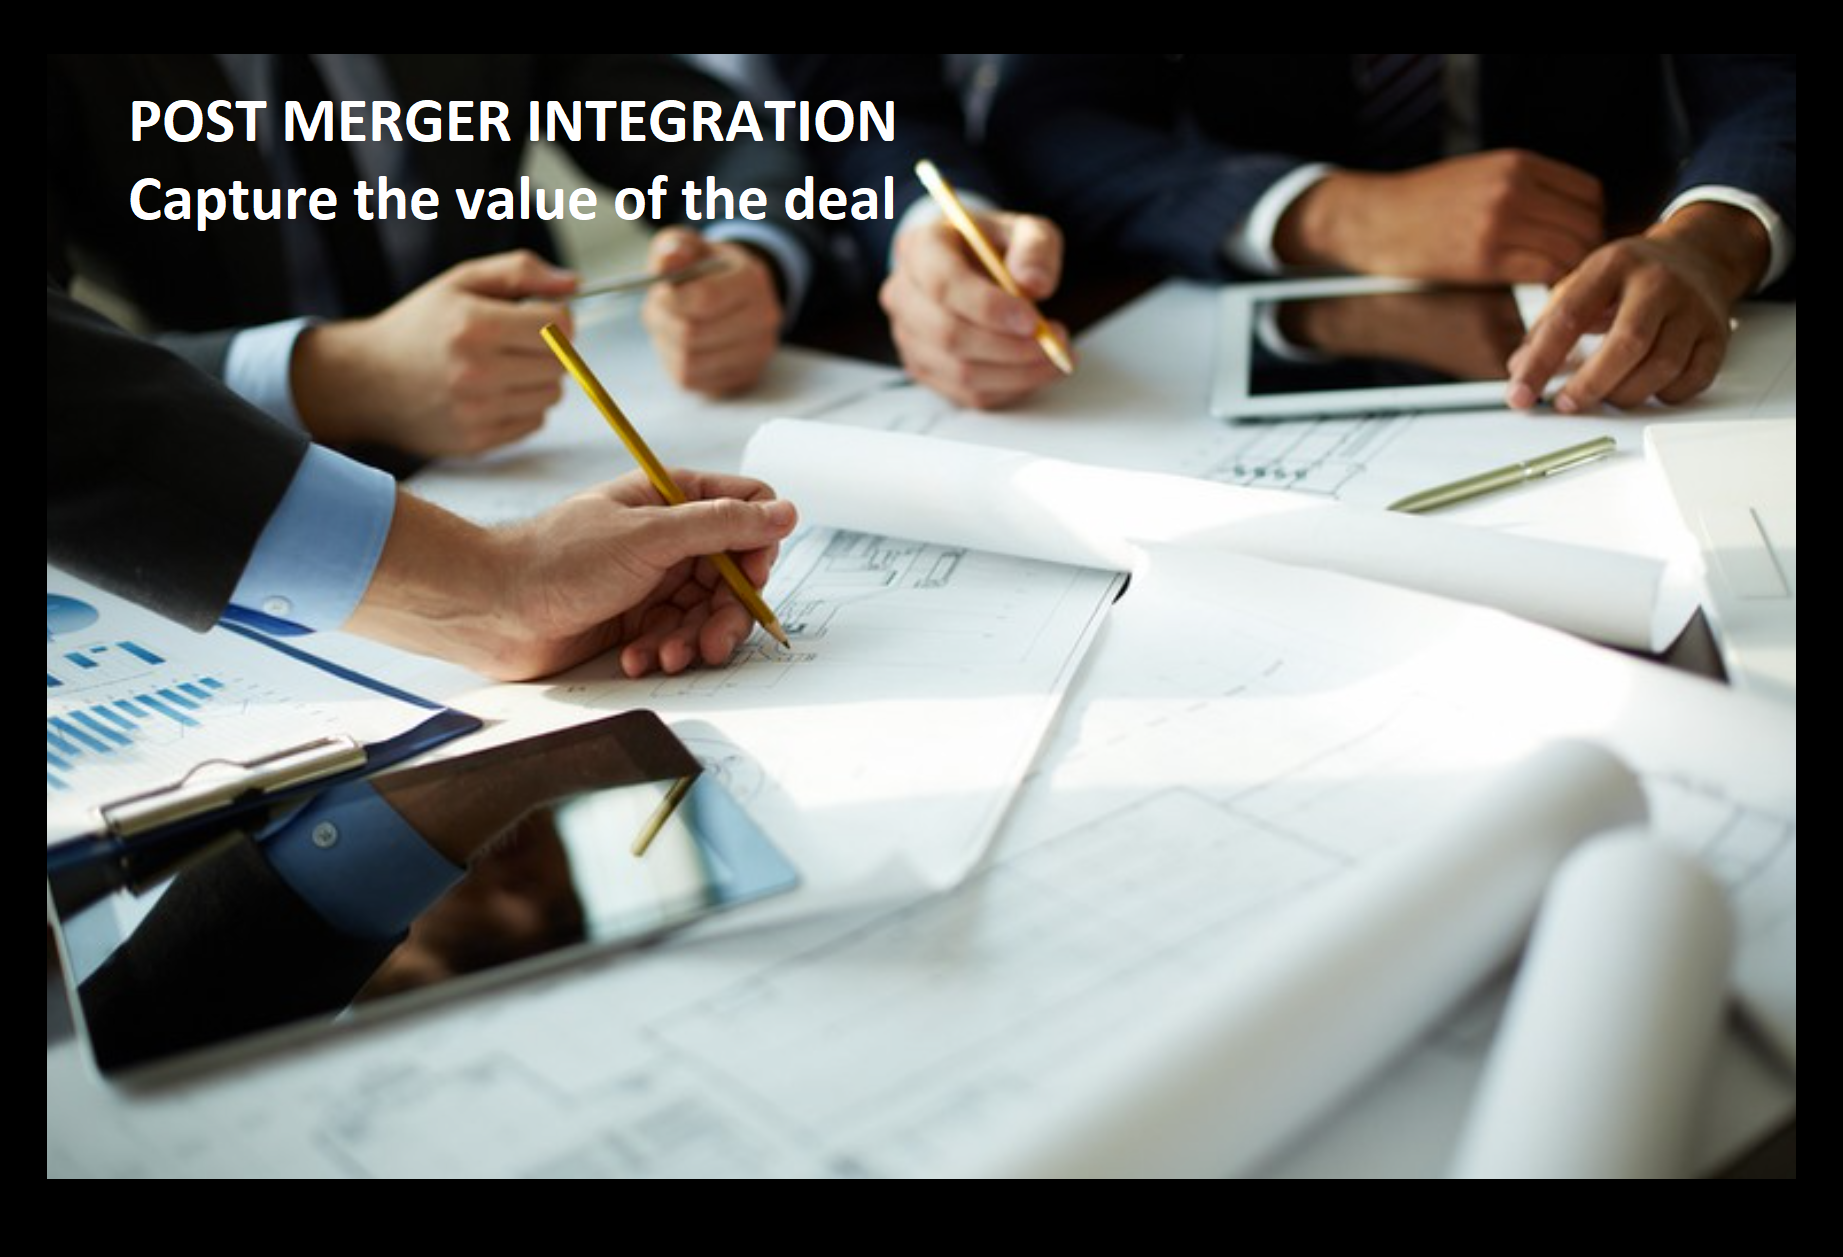 POST MERGER INTEGRATION Improve Finance | Optimus advice | Transformation